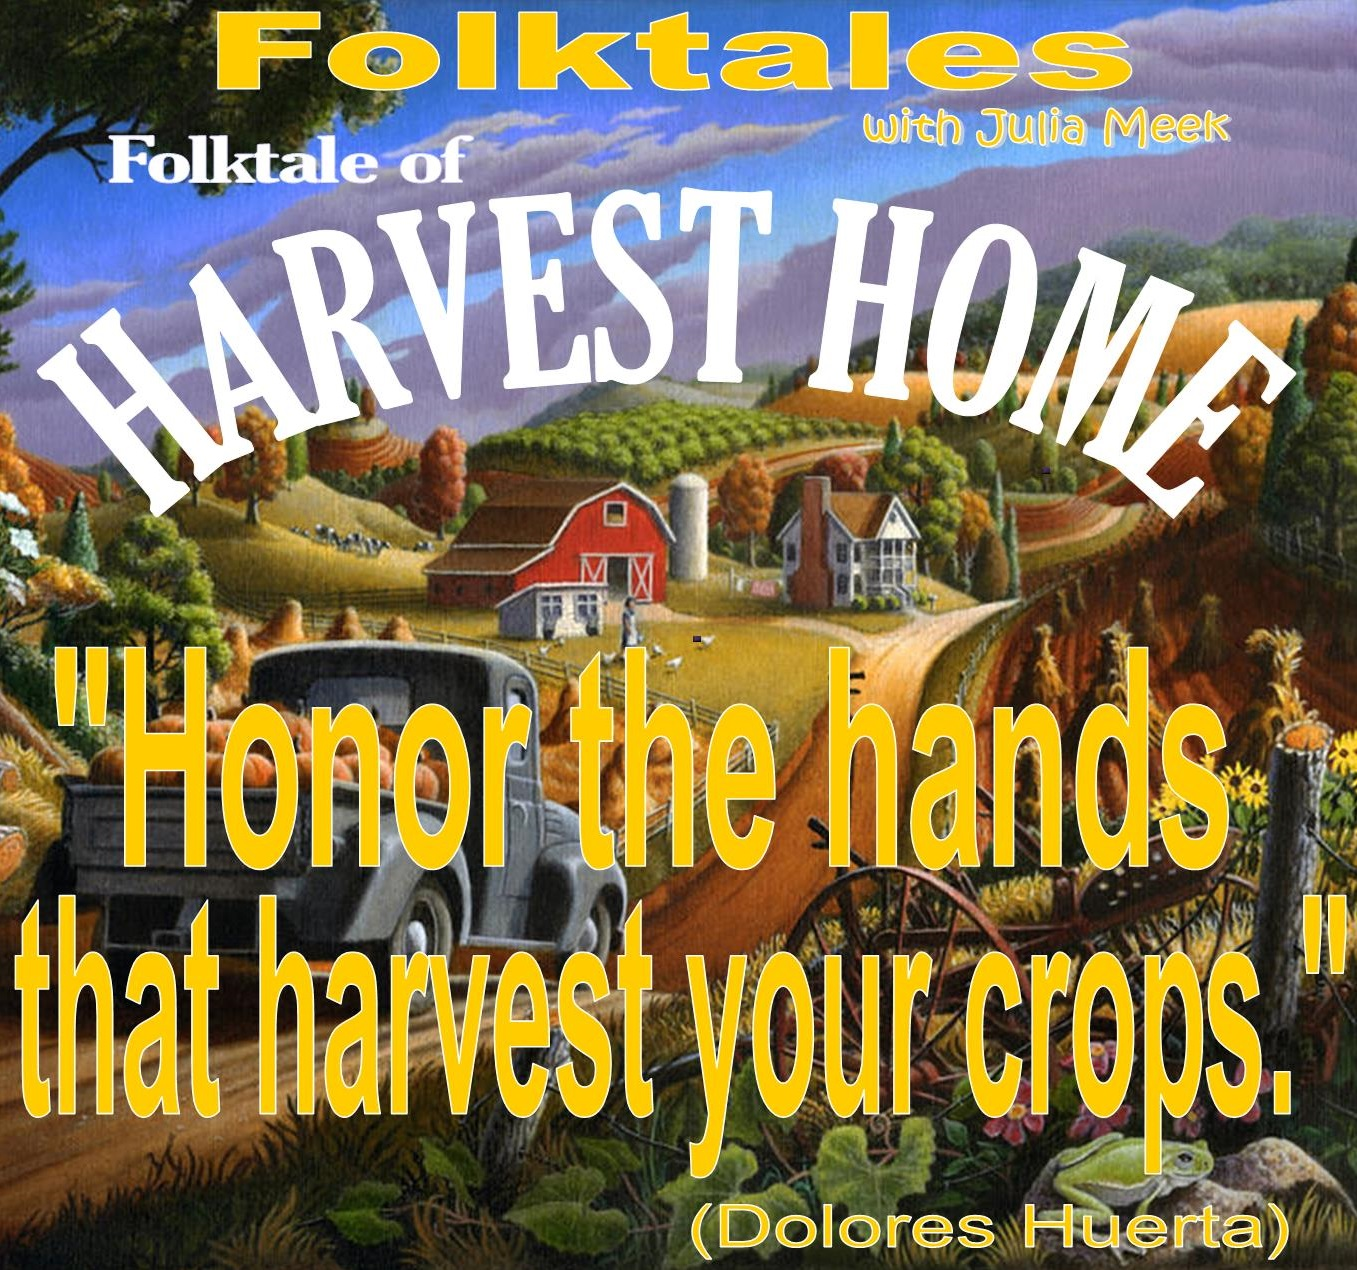 Ft_weekly-fb___prx_harvest_home_verse_small